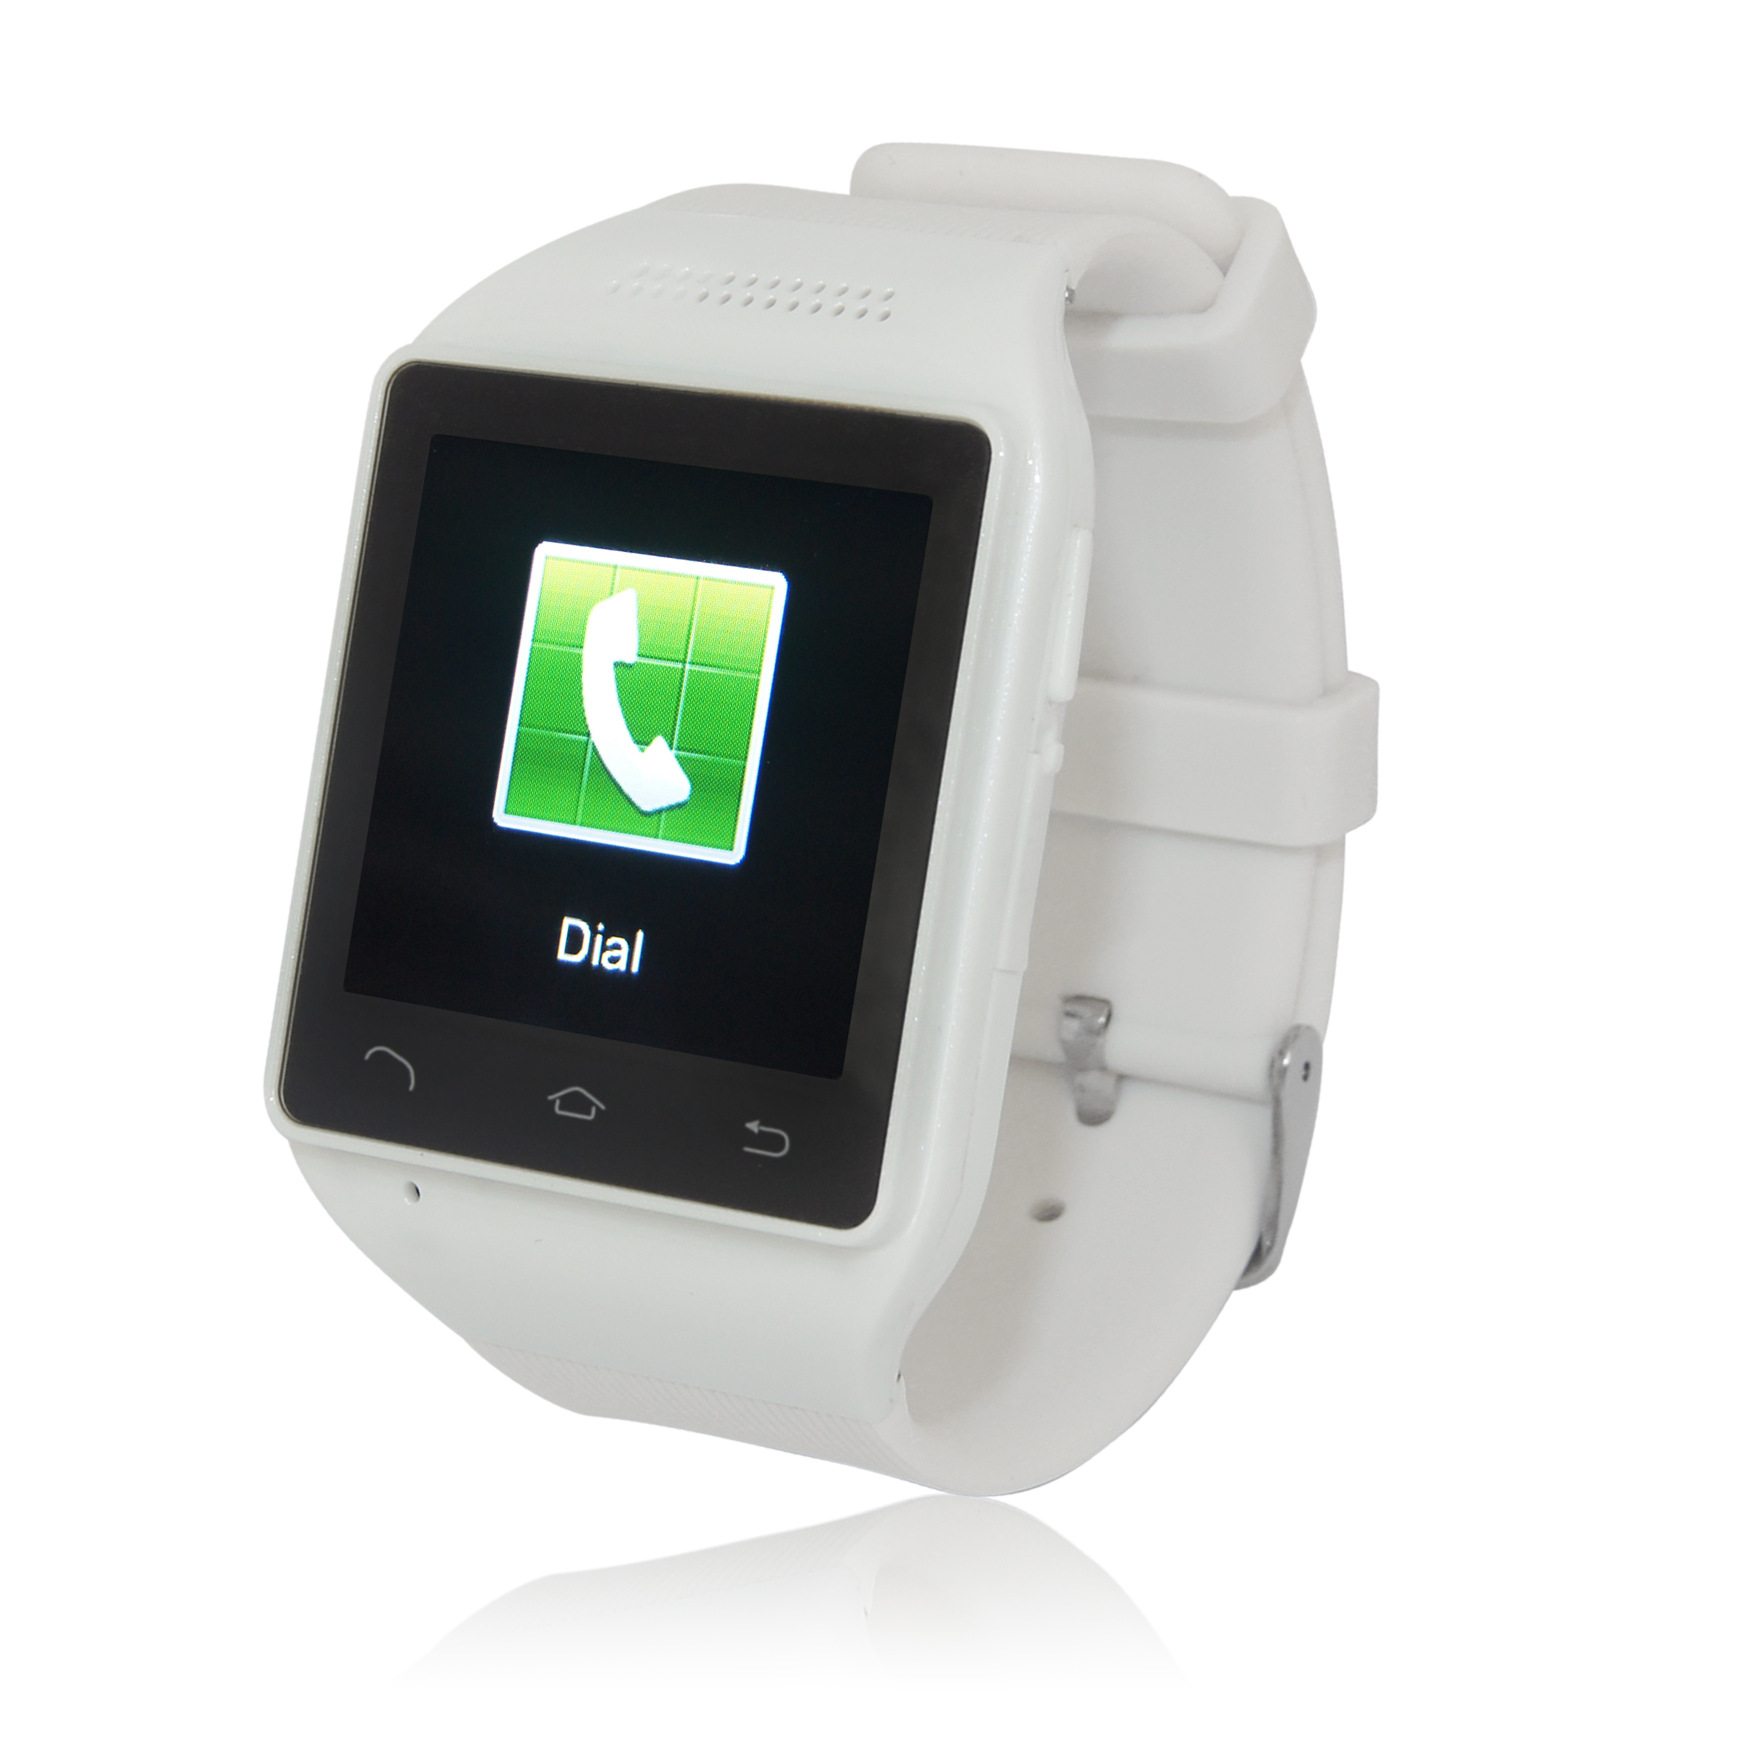 product capable rate phone sim monitor card lte wirst fit wifi gps watches watch waterproof data smart fdd pedometer sports heart flip cell